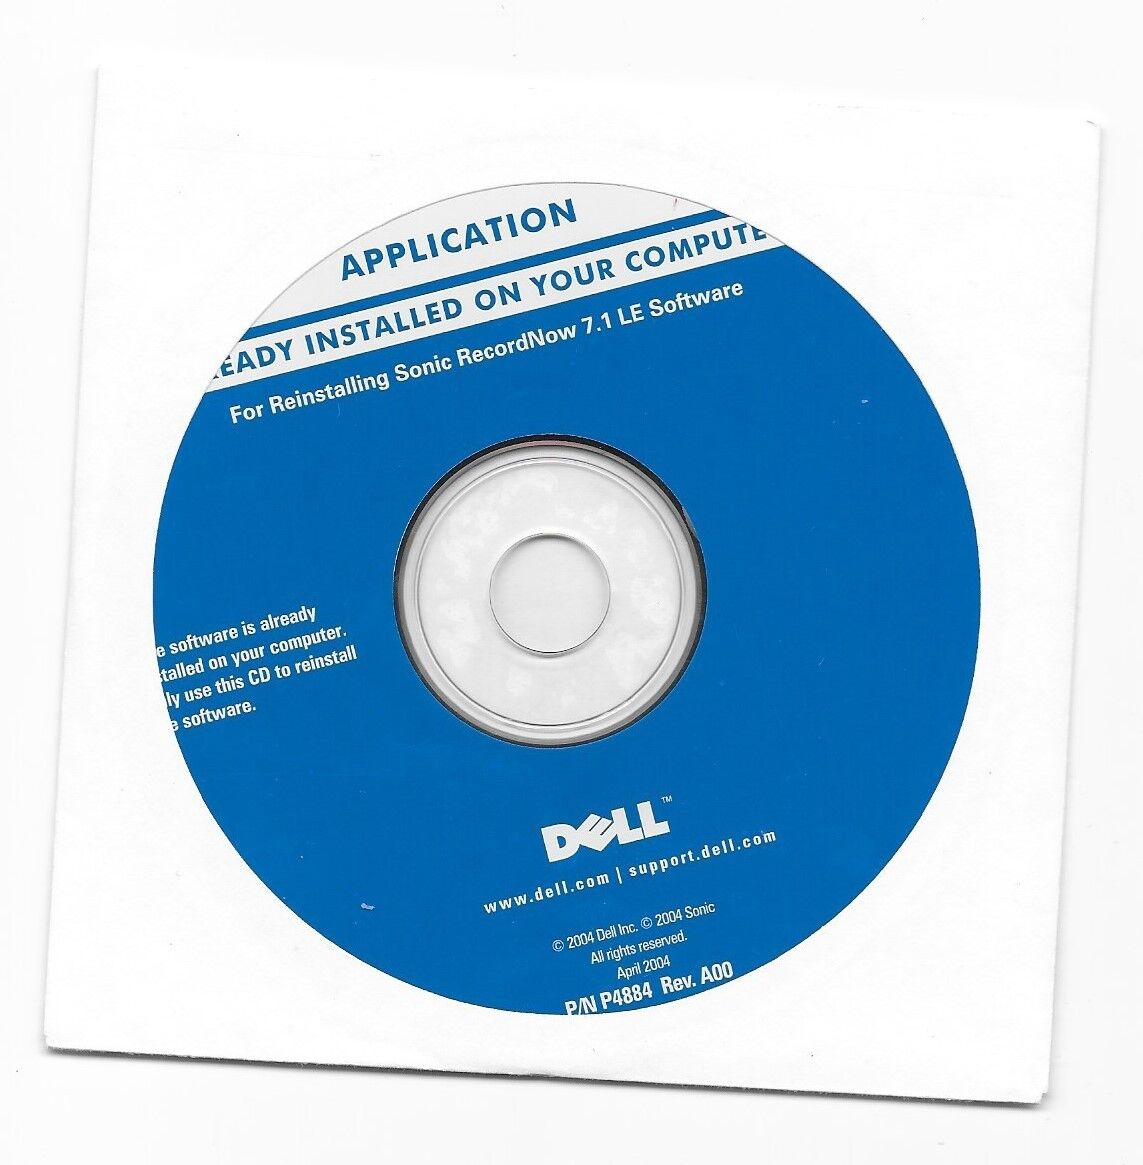 Dell For Reinstalling Sonic RecordNow 7.1 LE Software P/N P4884 Copyright 2004